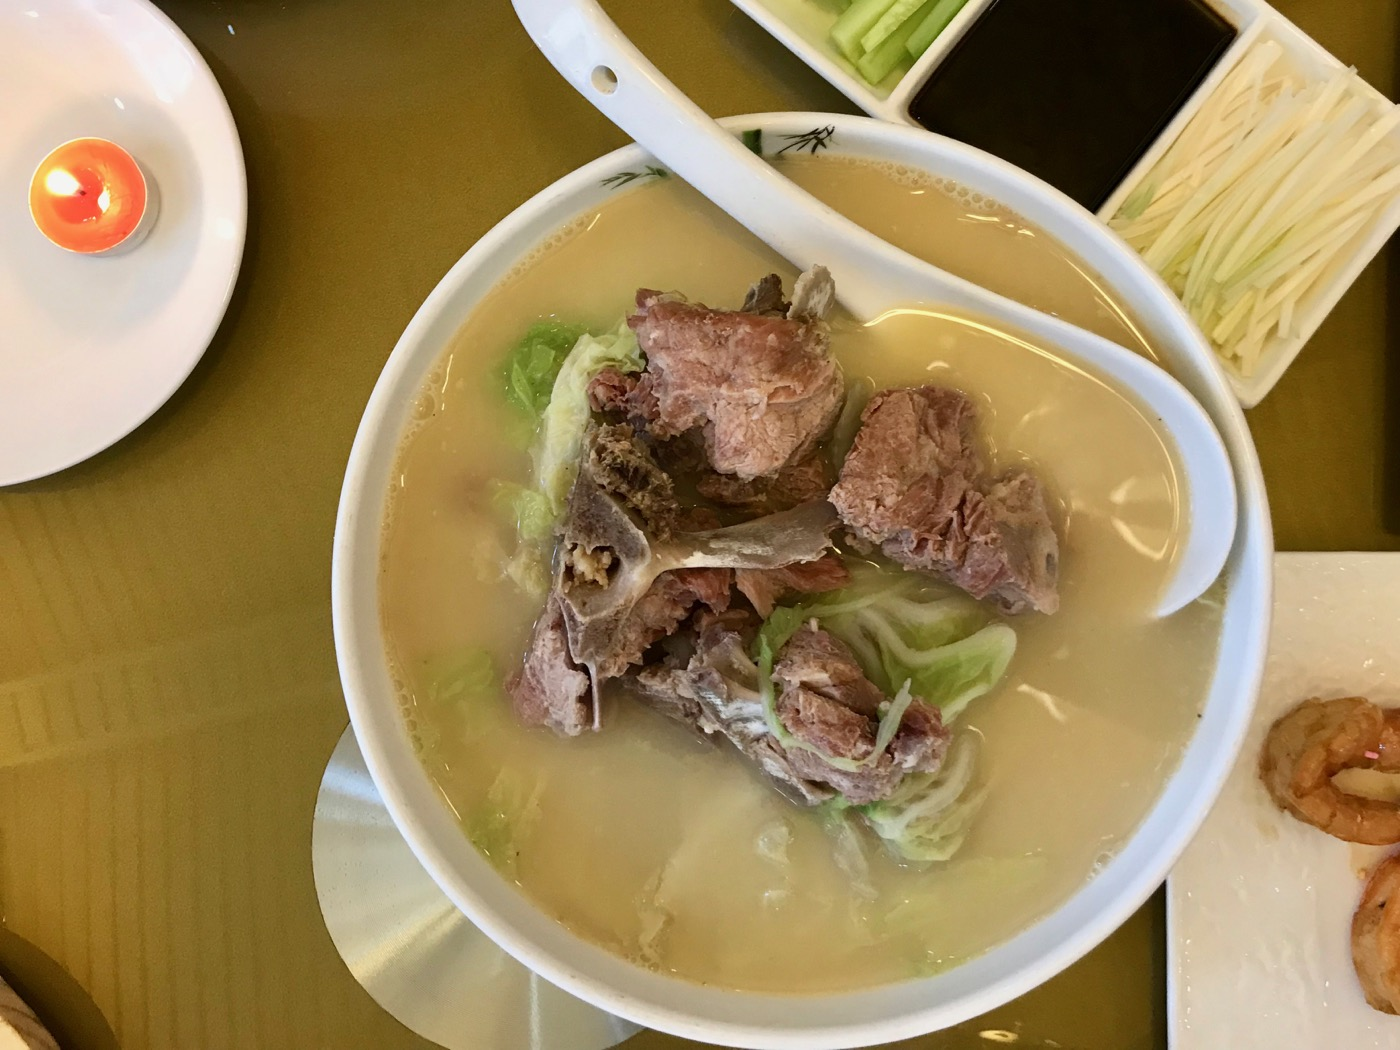 Lamb spine soup.  Lunch in Beijing, China.